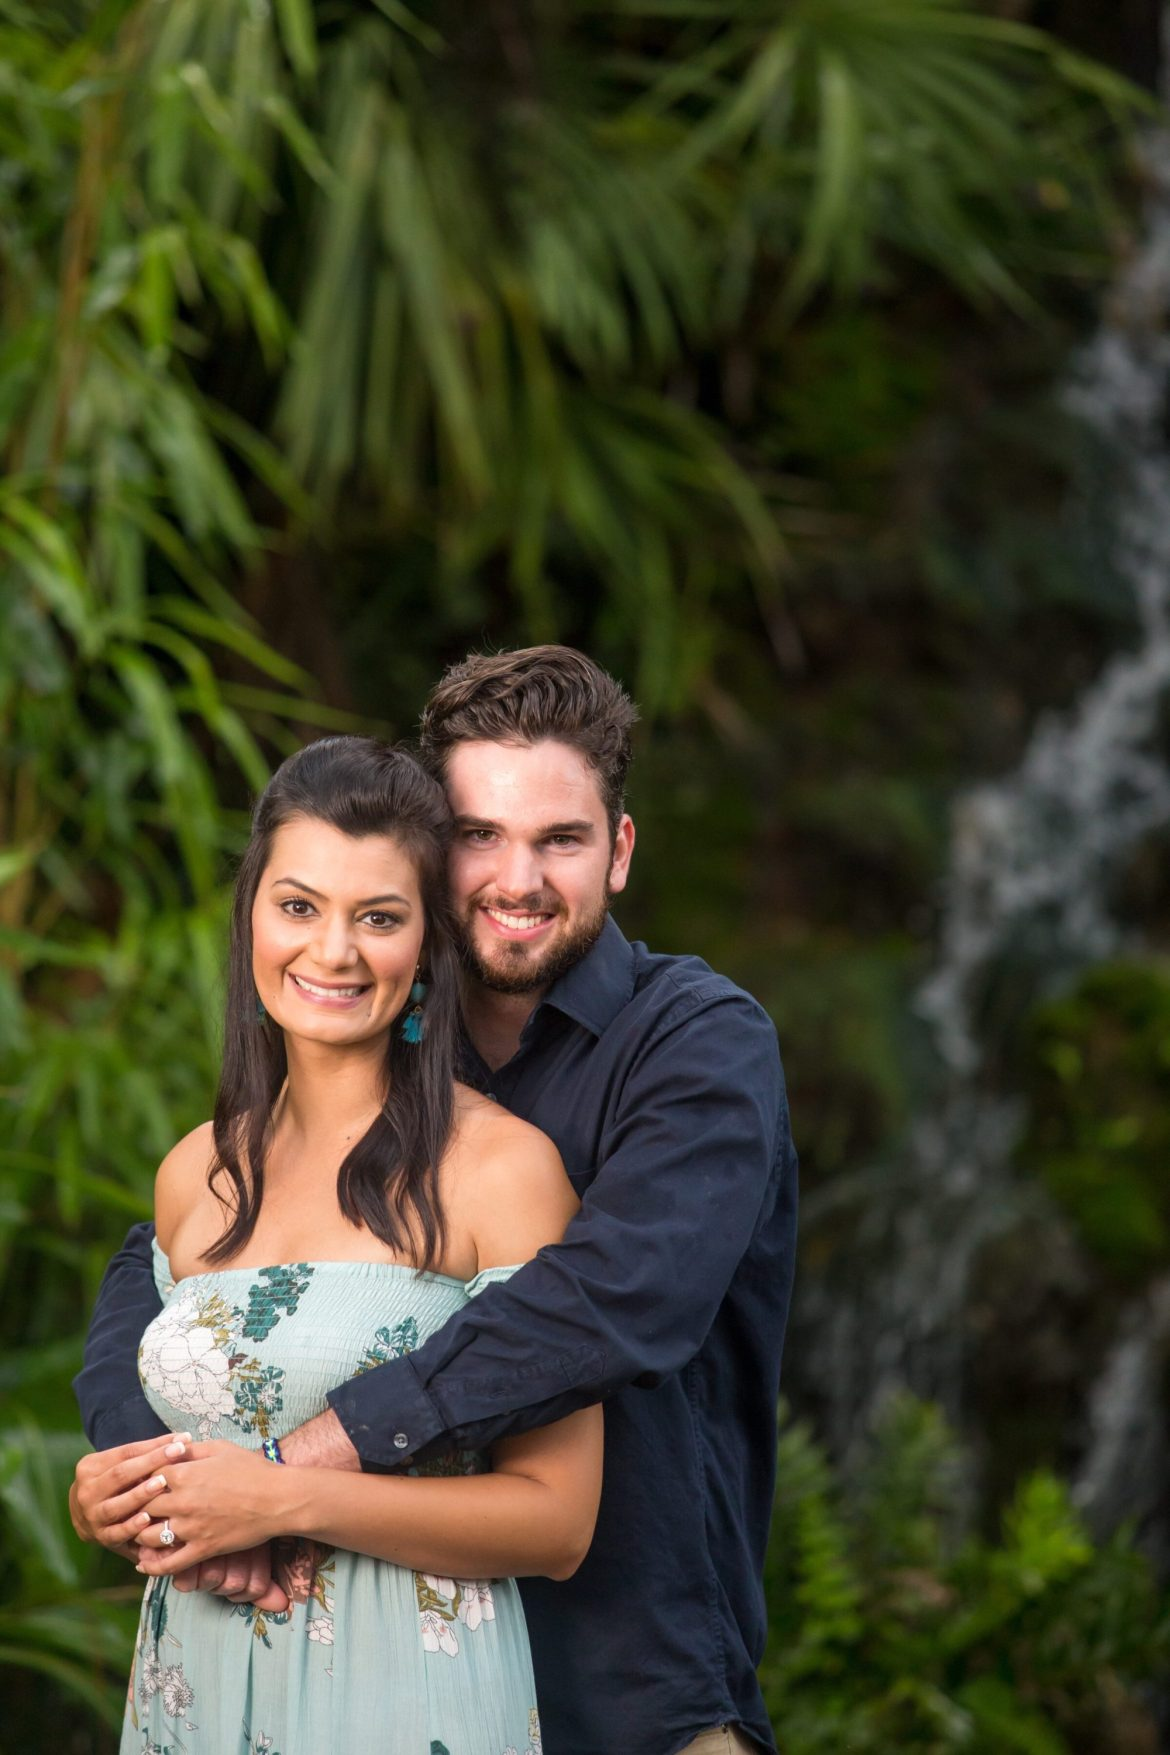 Ormond Beach engagement photography in the garden